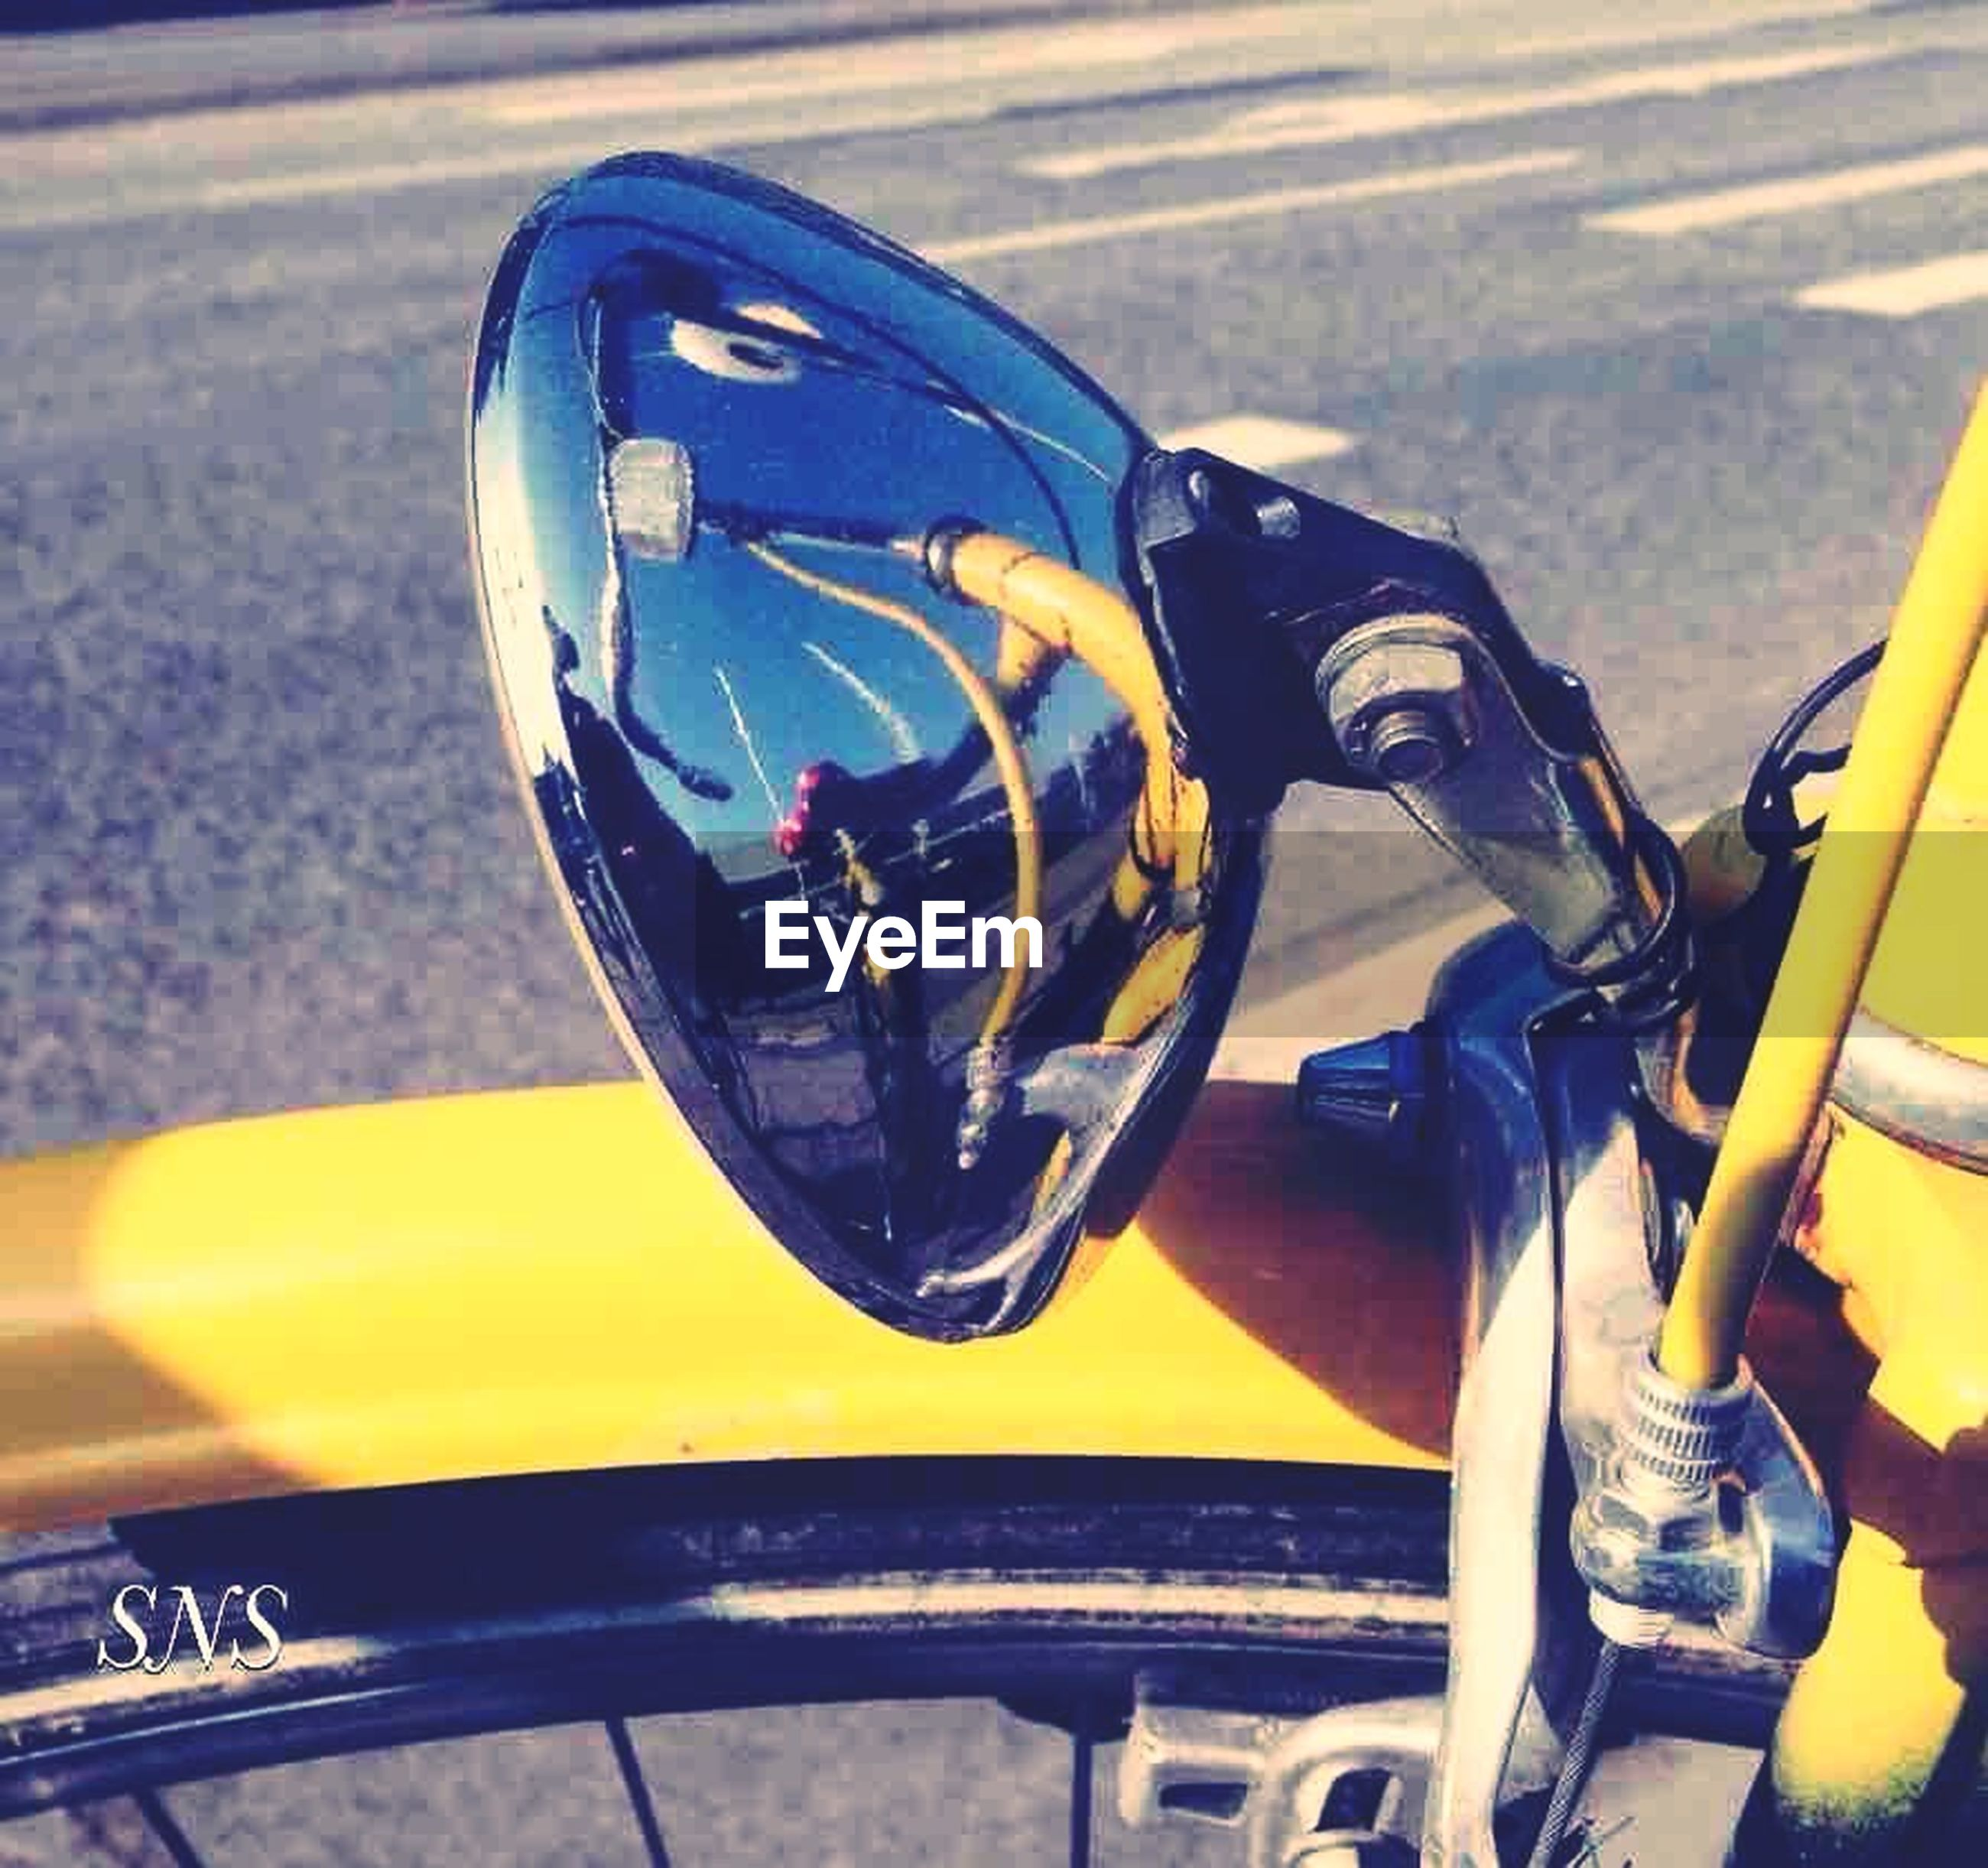 mode of transportation, transportation, land vehicle, reflection, motorcycle, road, day, side-view mirror, close-up, bicycle, street, outdoors, city, car, focus on foreground, handlebar, no people, motor vehicle, stationary, sunlight